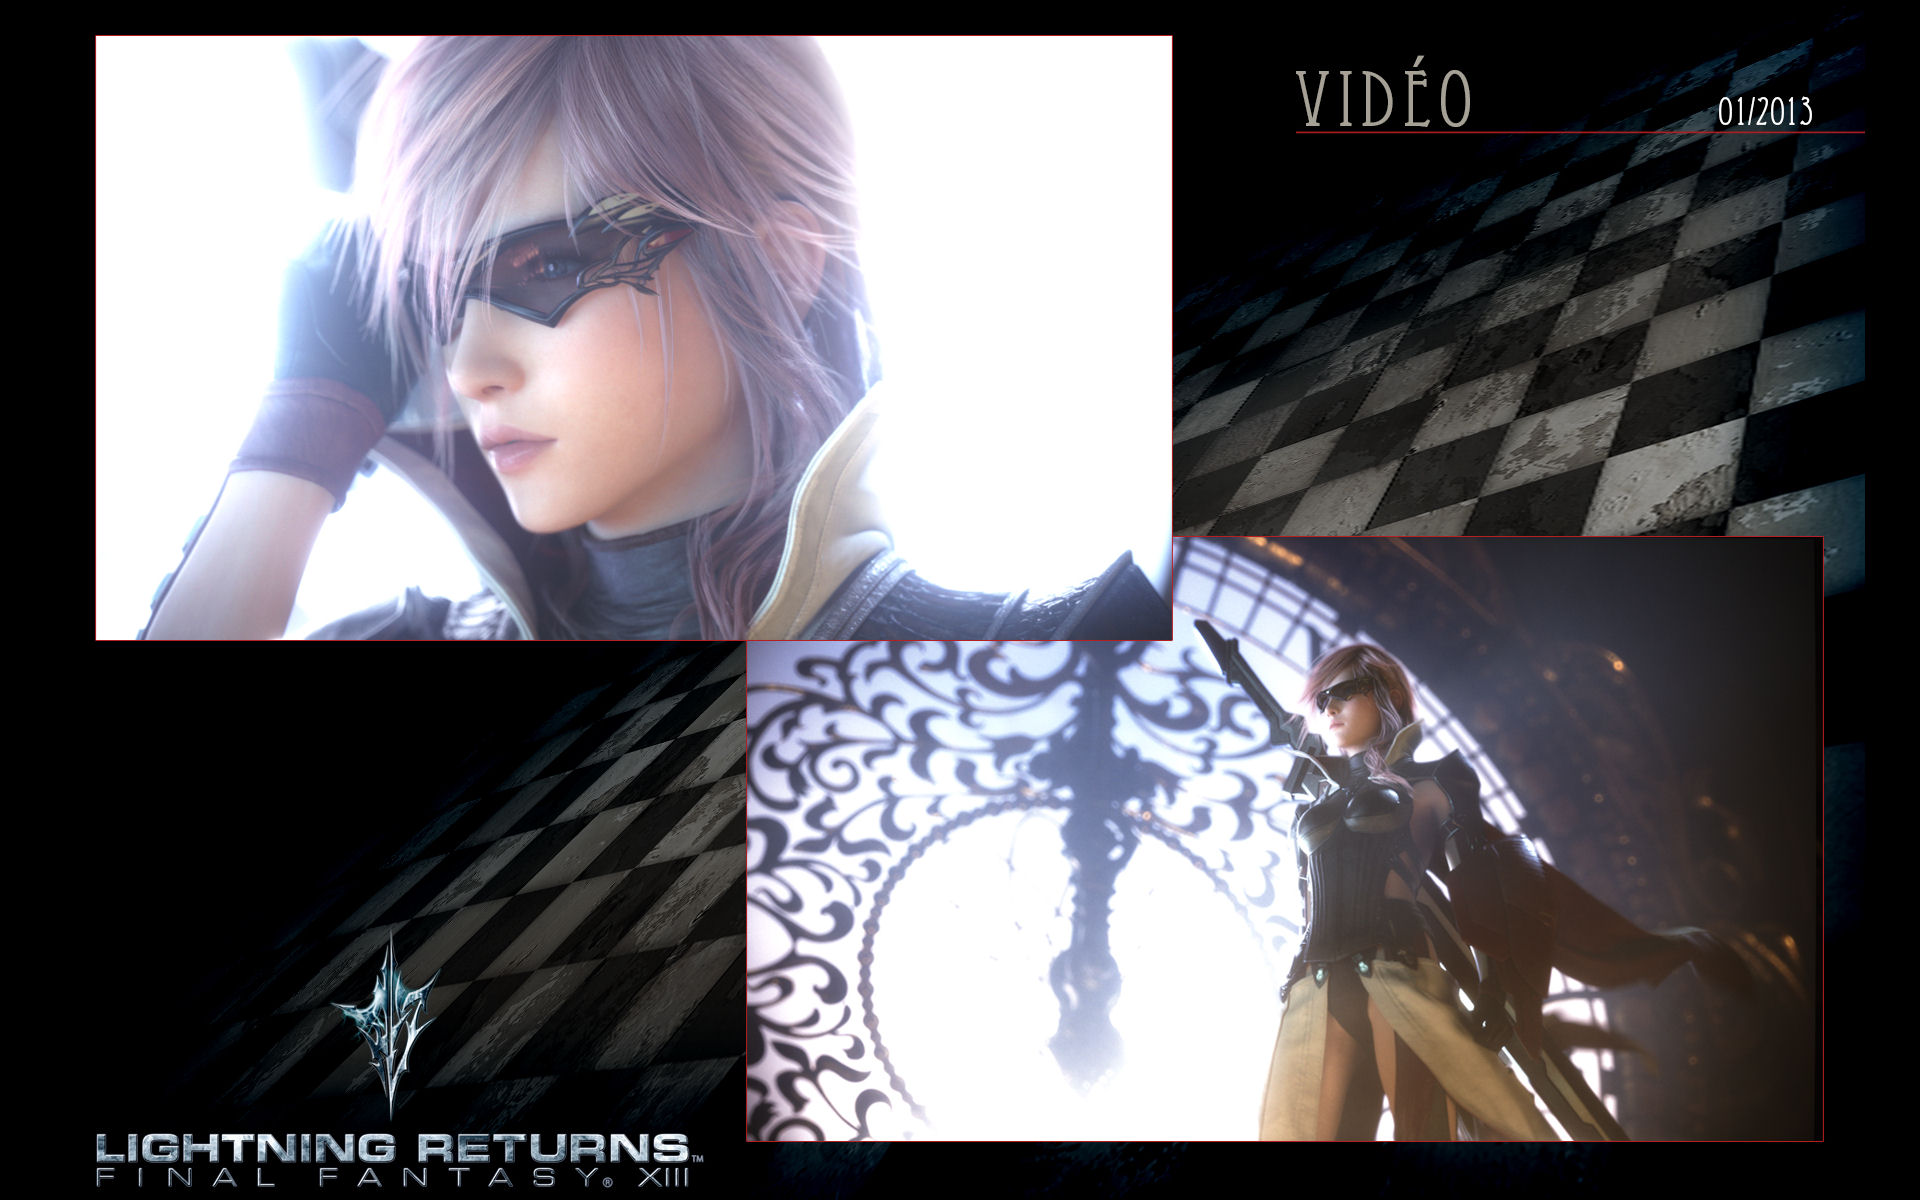 Lightning Returns Final Fantasy Xiii Clock Wallpaper